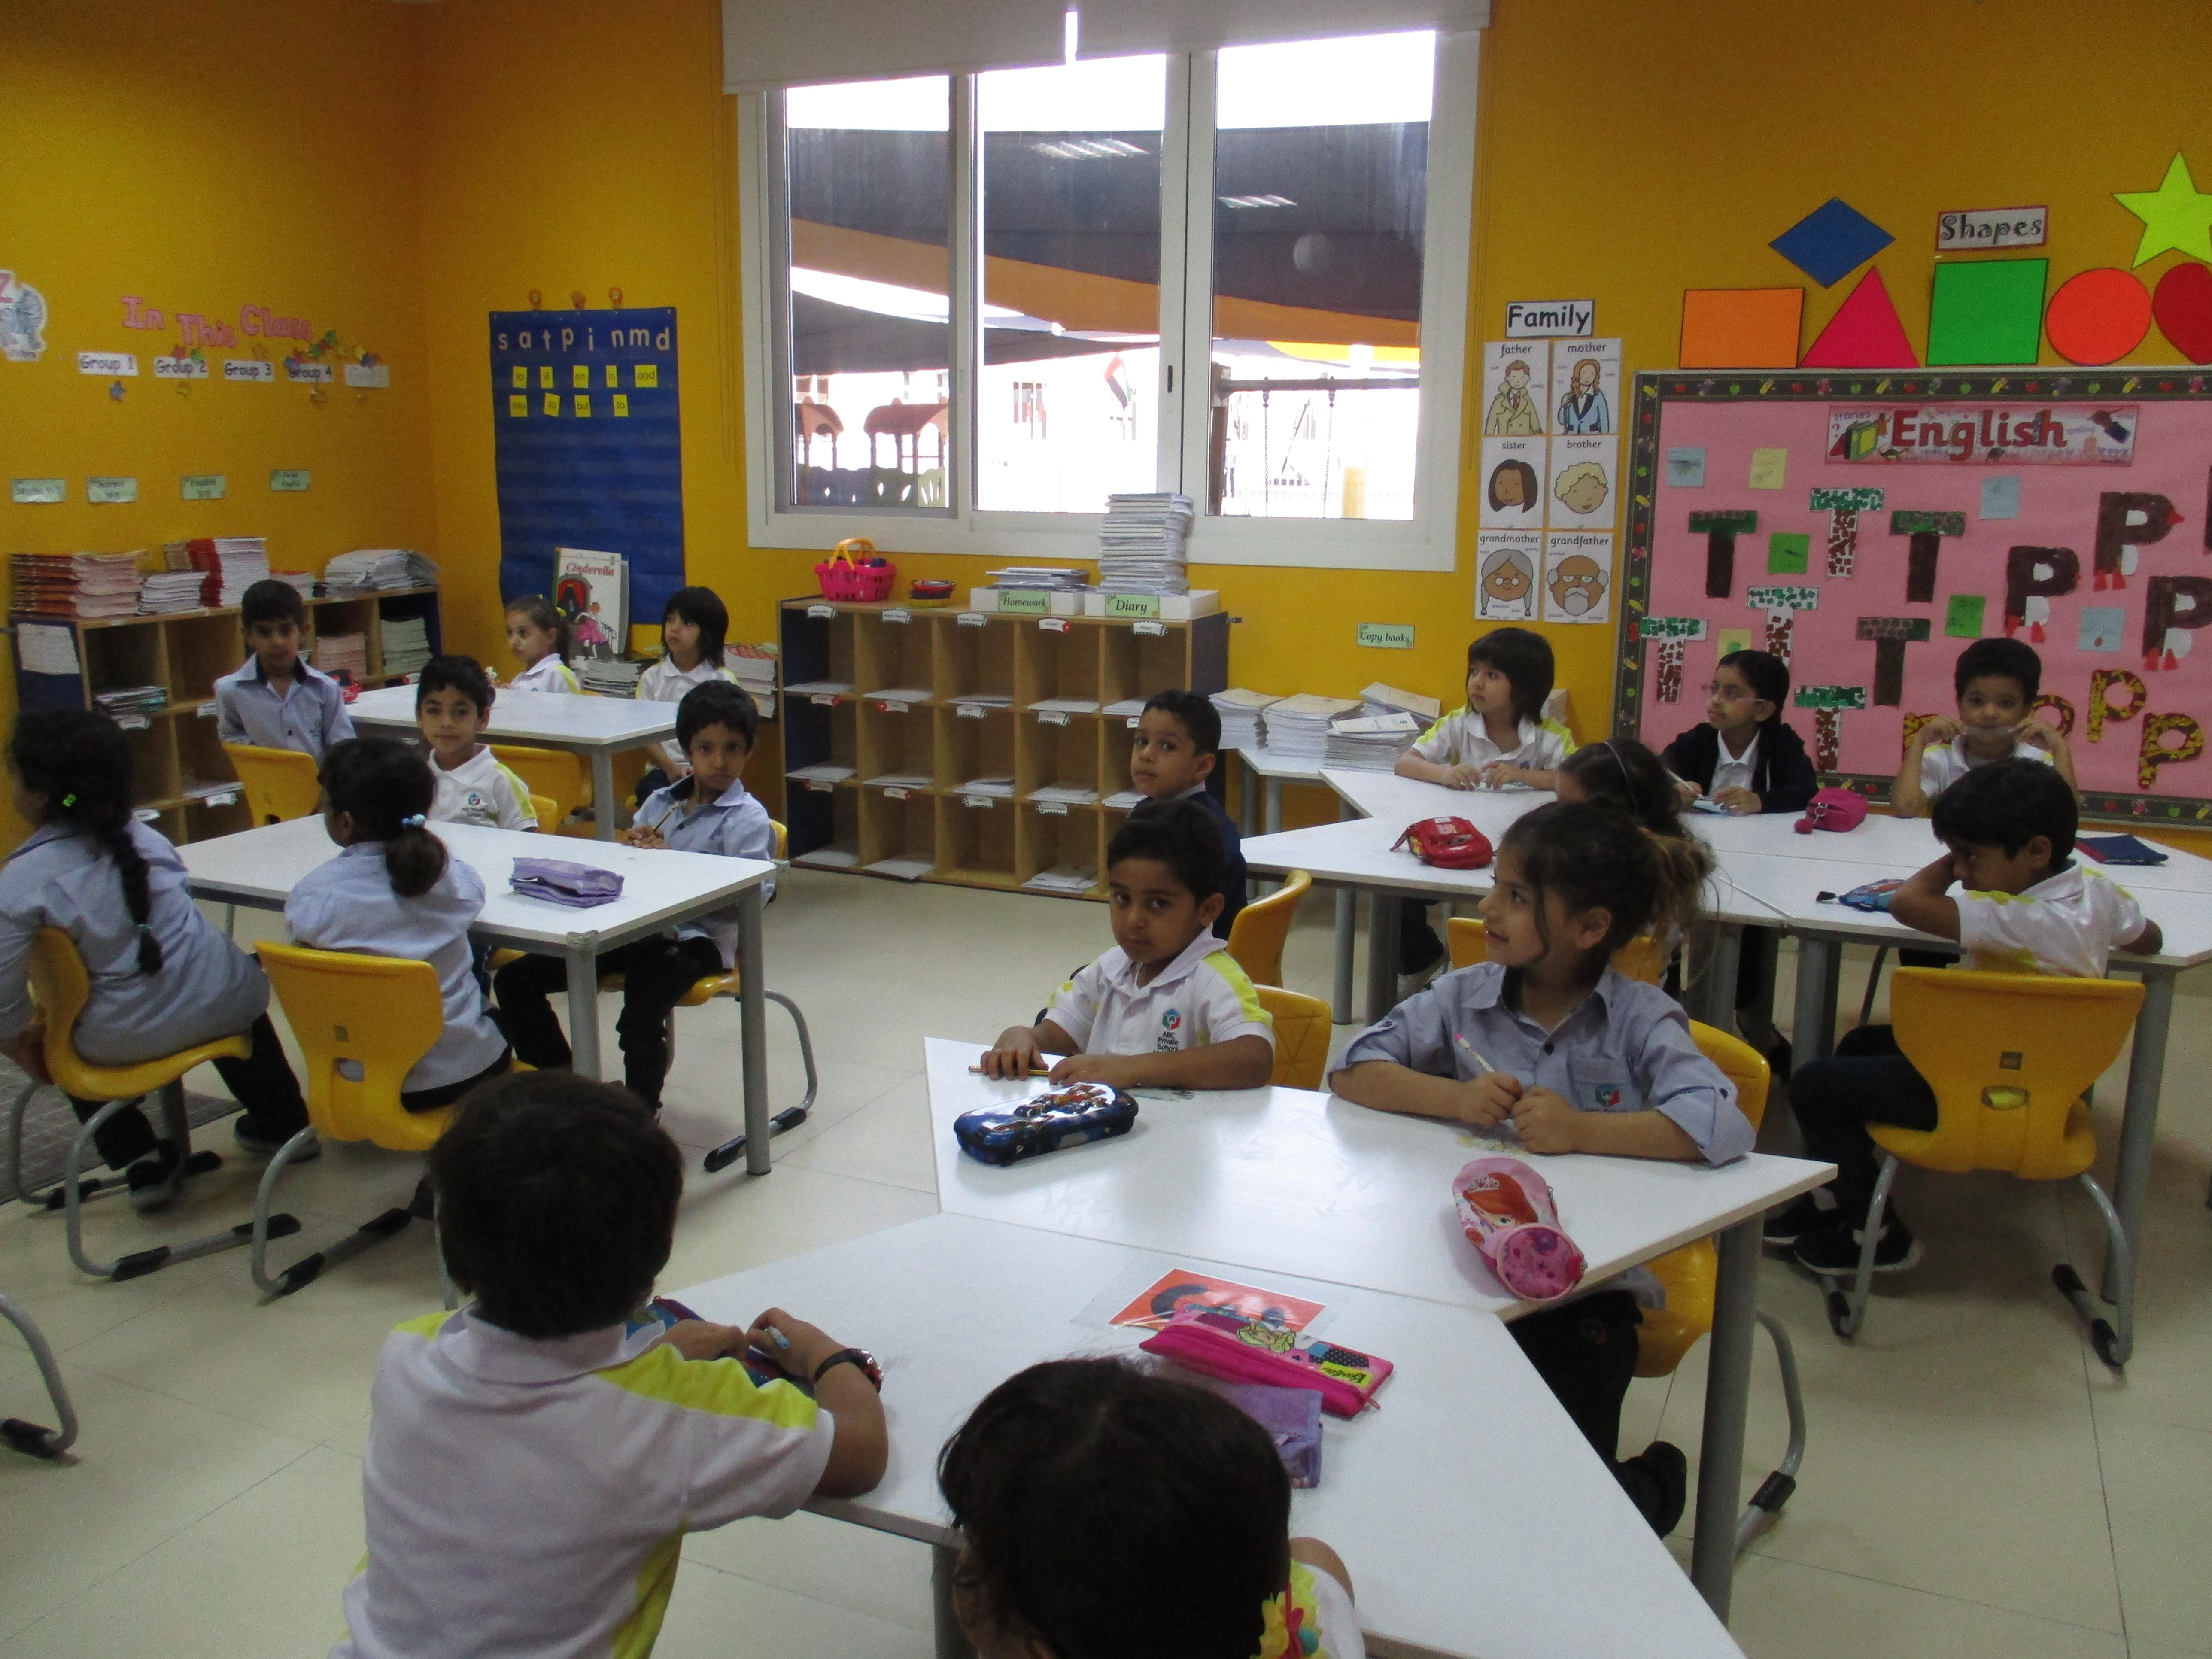 Kinder Garden: ABC Private School